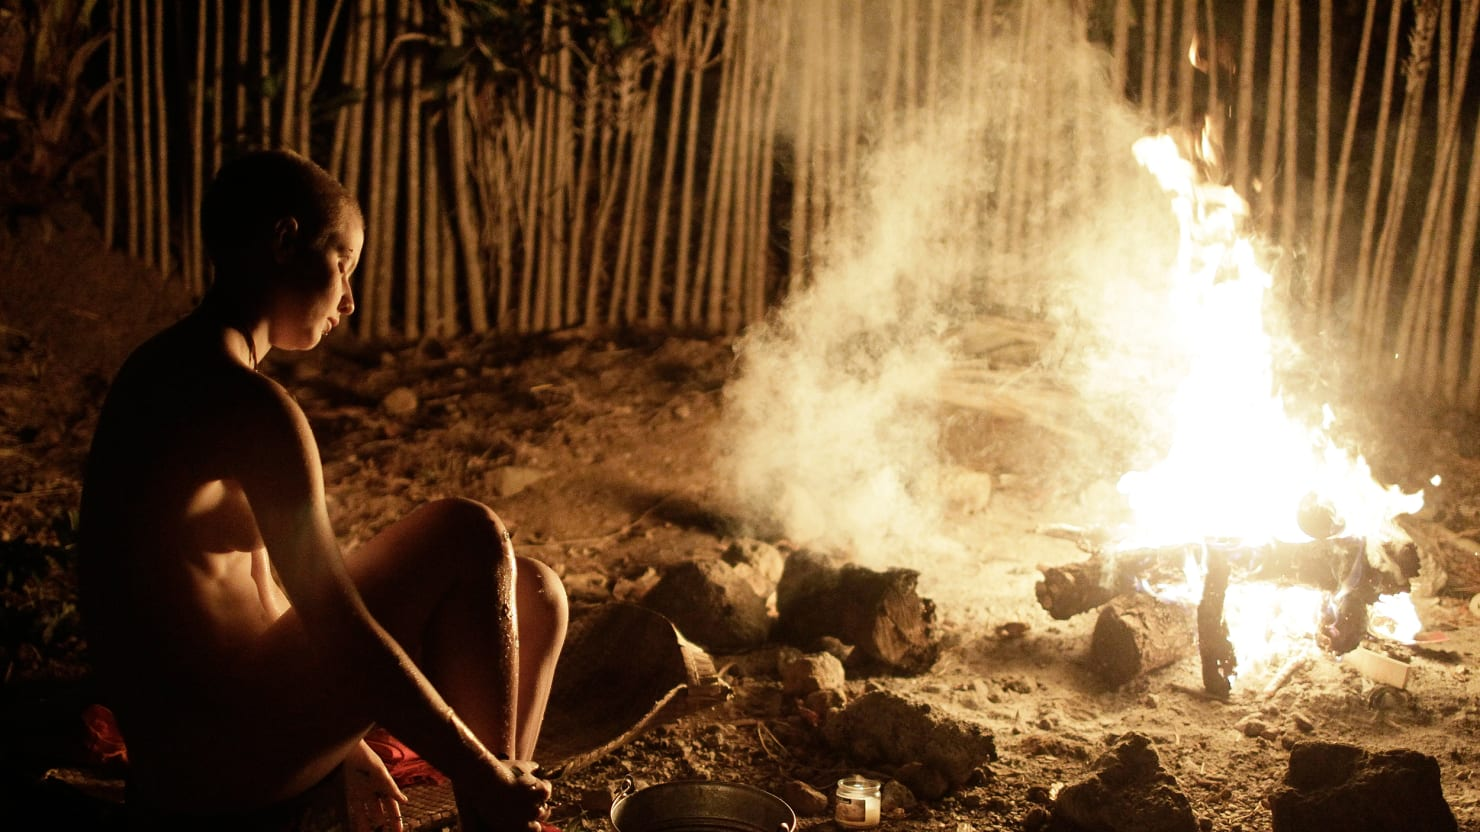 Escaping Heroin: An 18-Year-Old's Ibogaine Ceremony (PHOTOS)